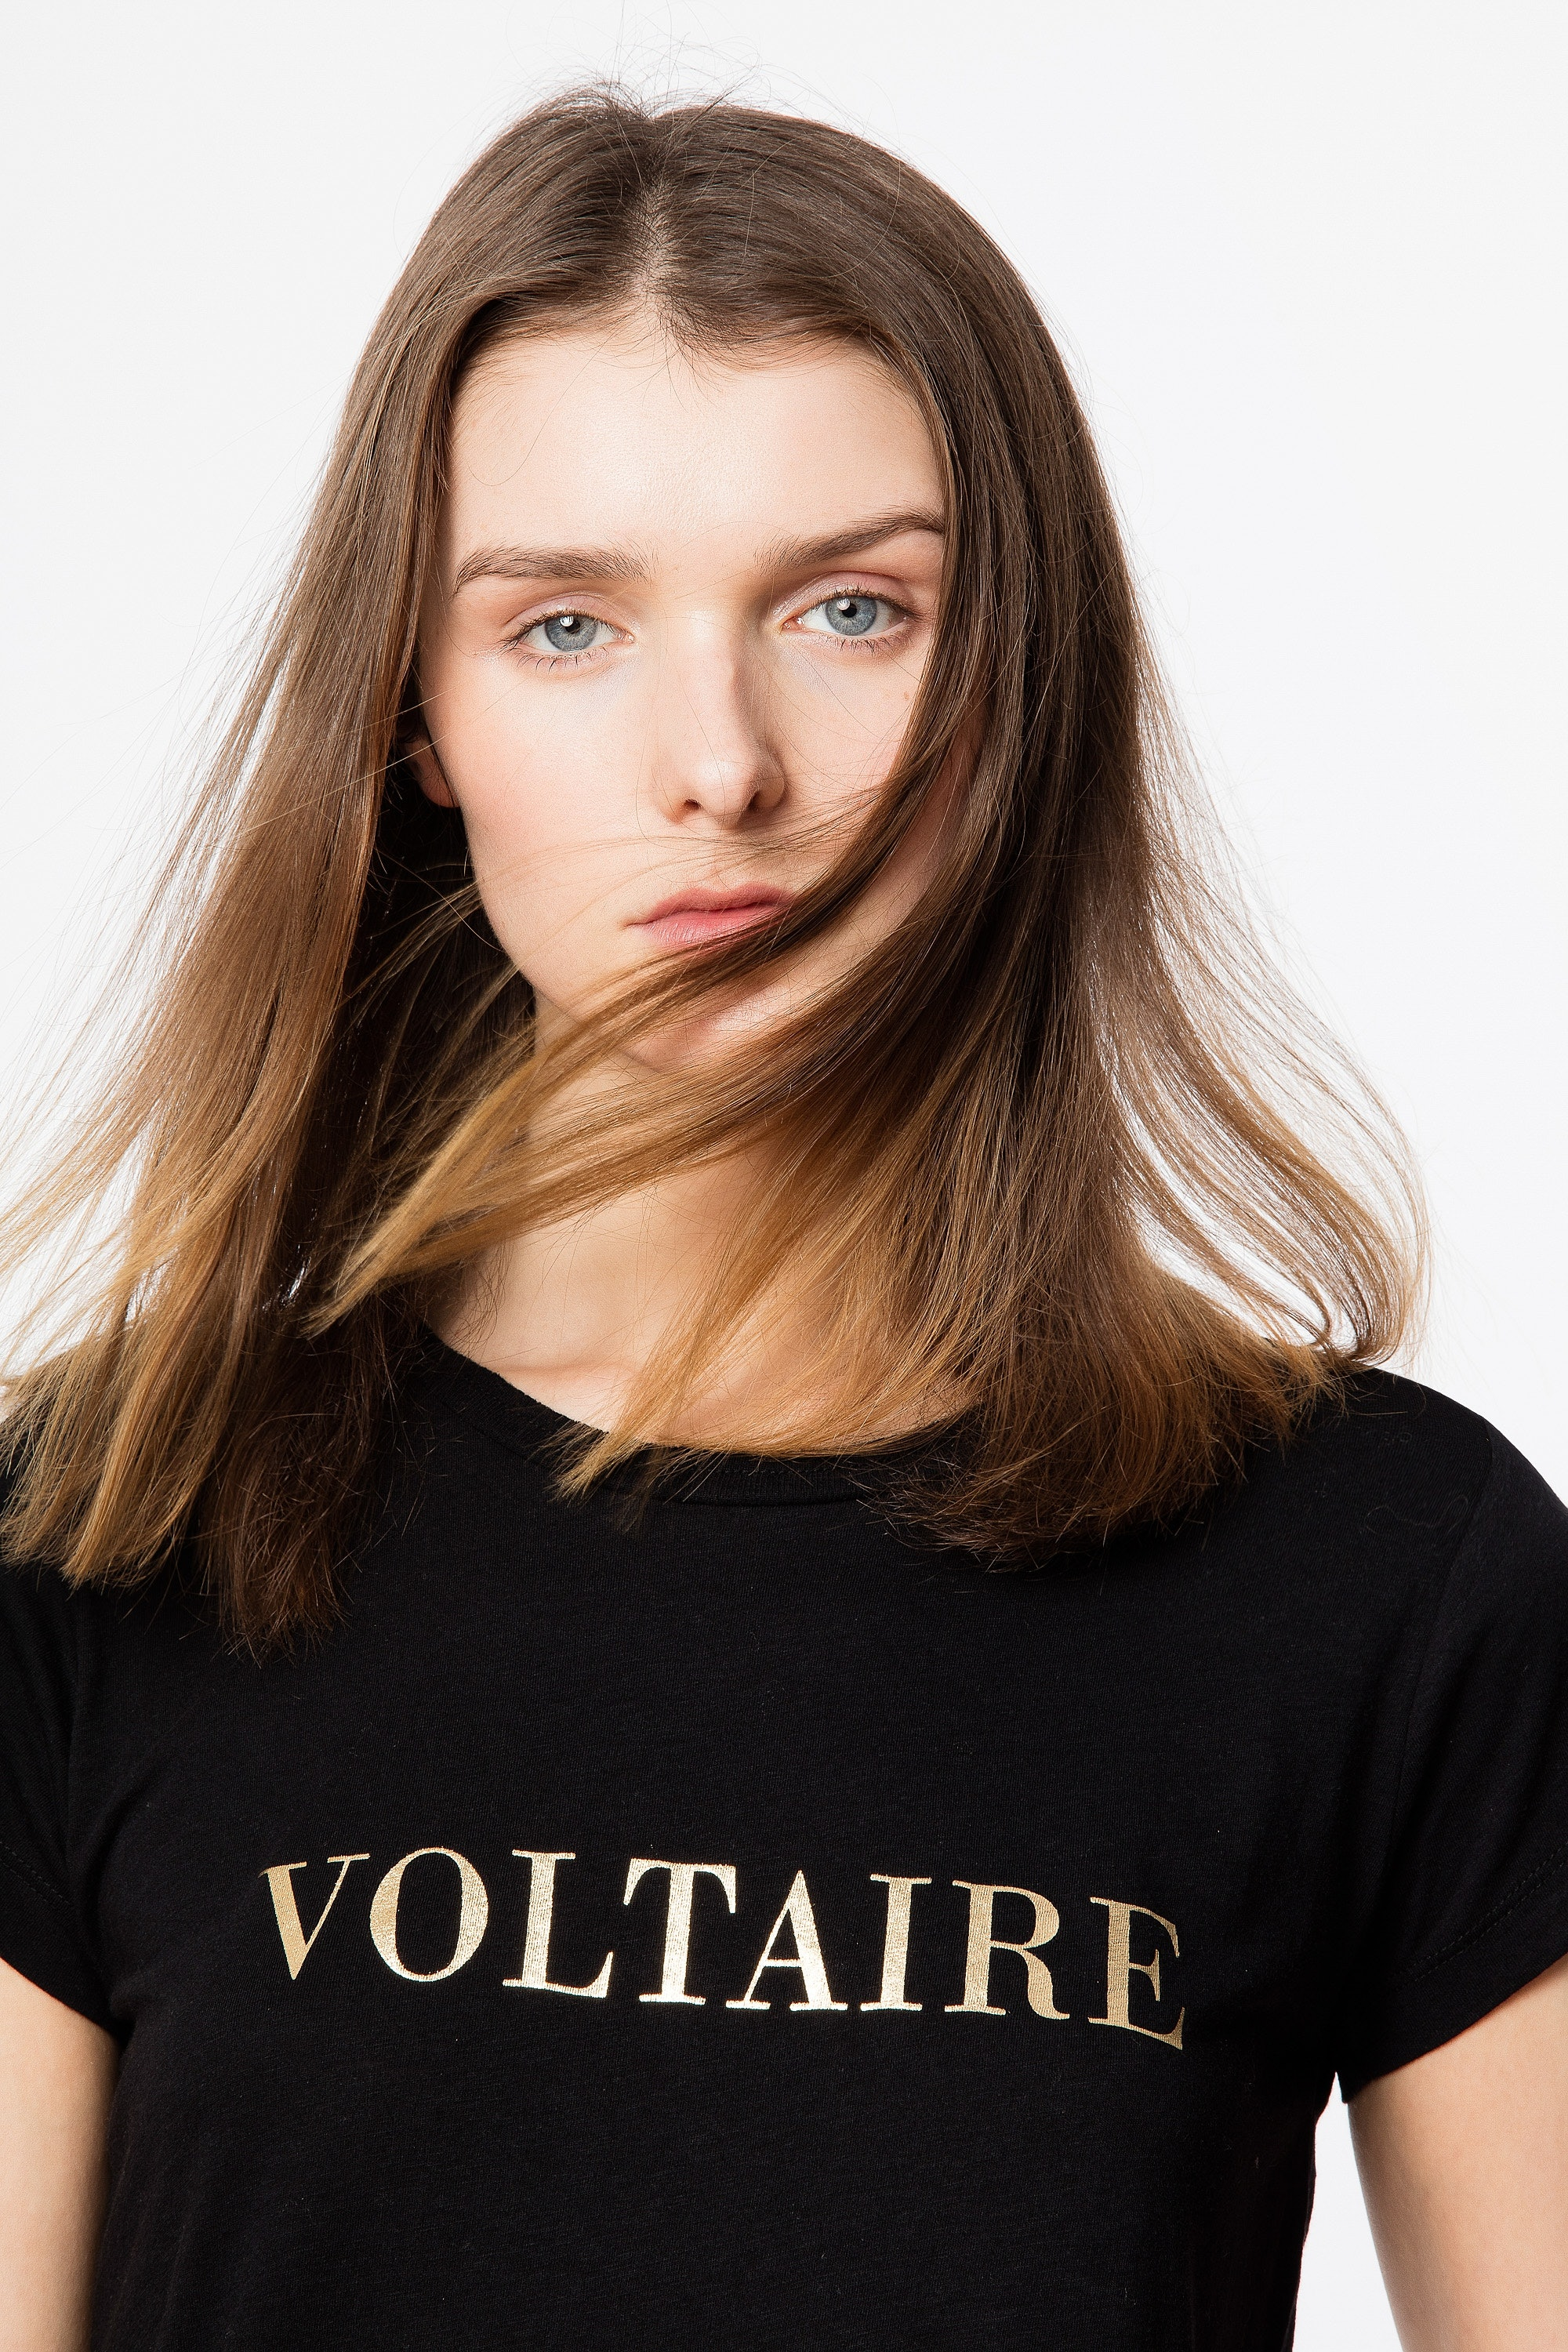 Skinny Voltaire T-shirt